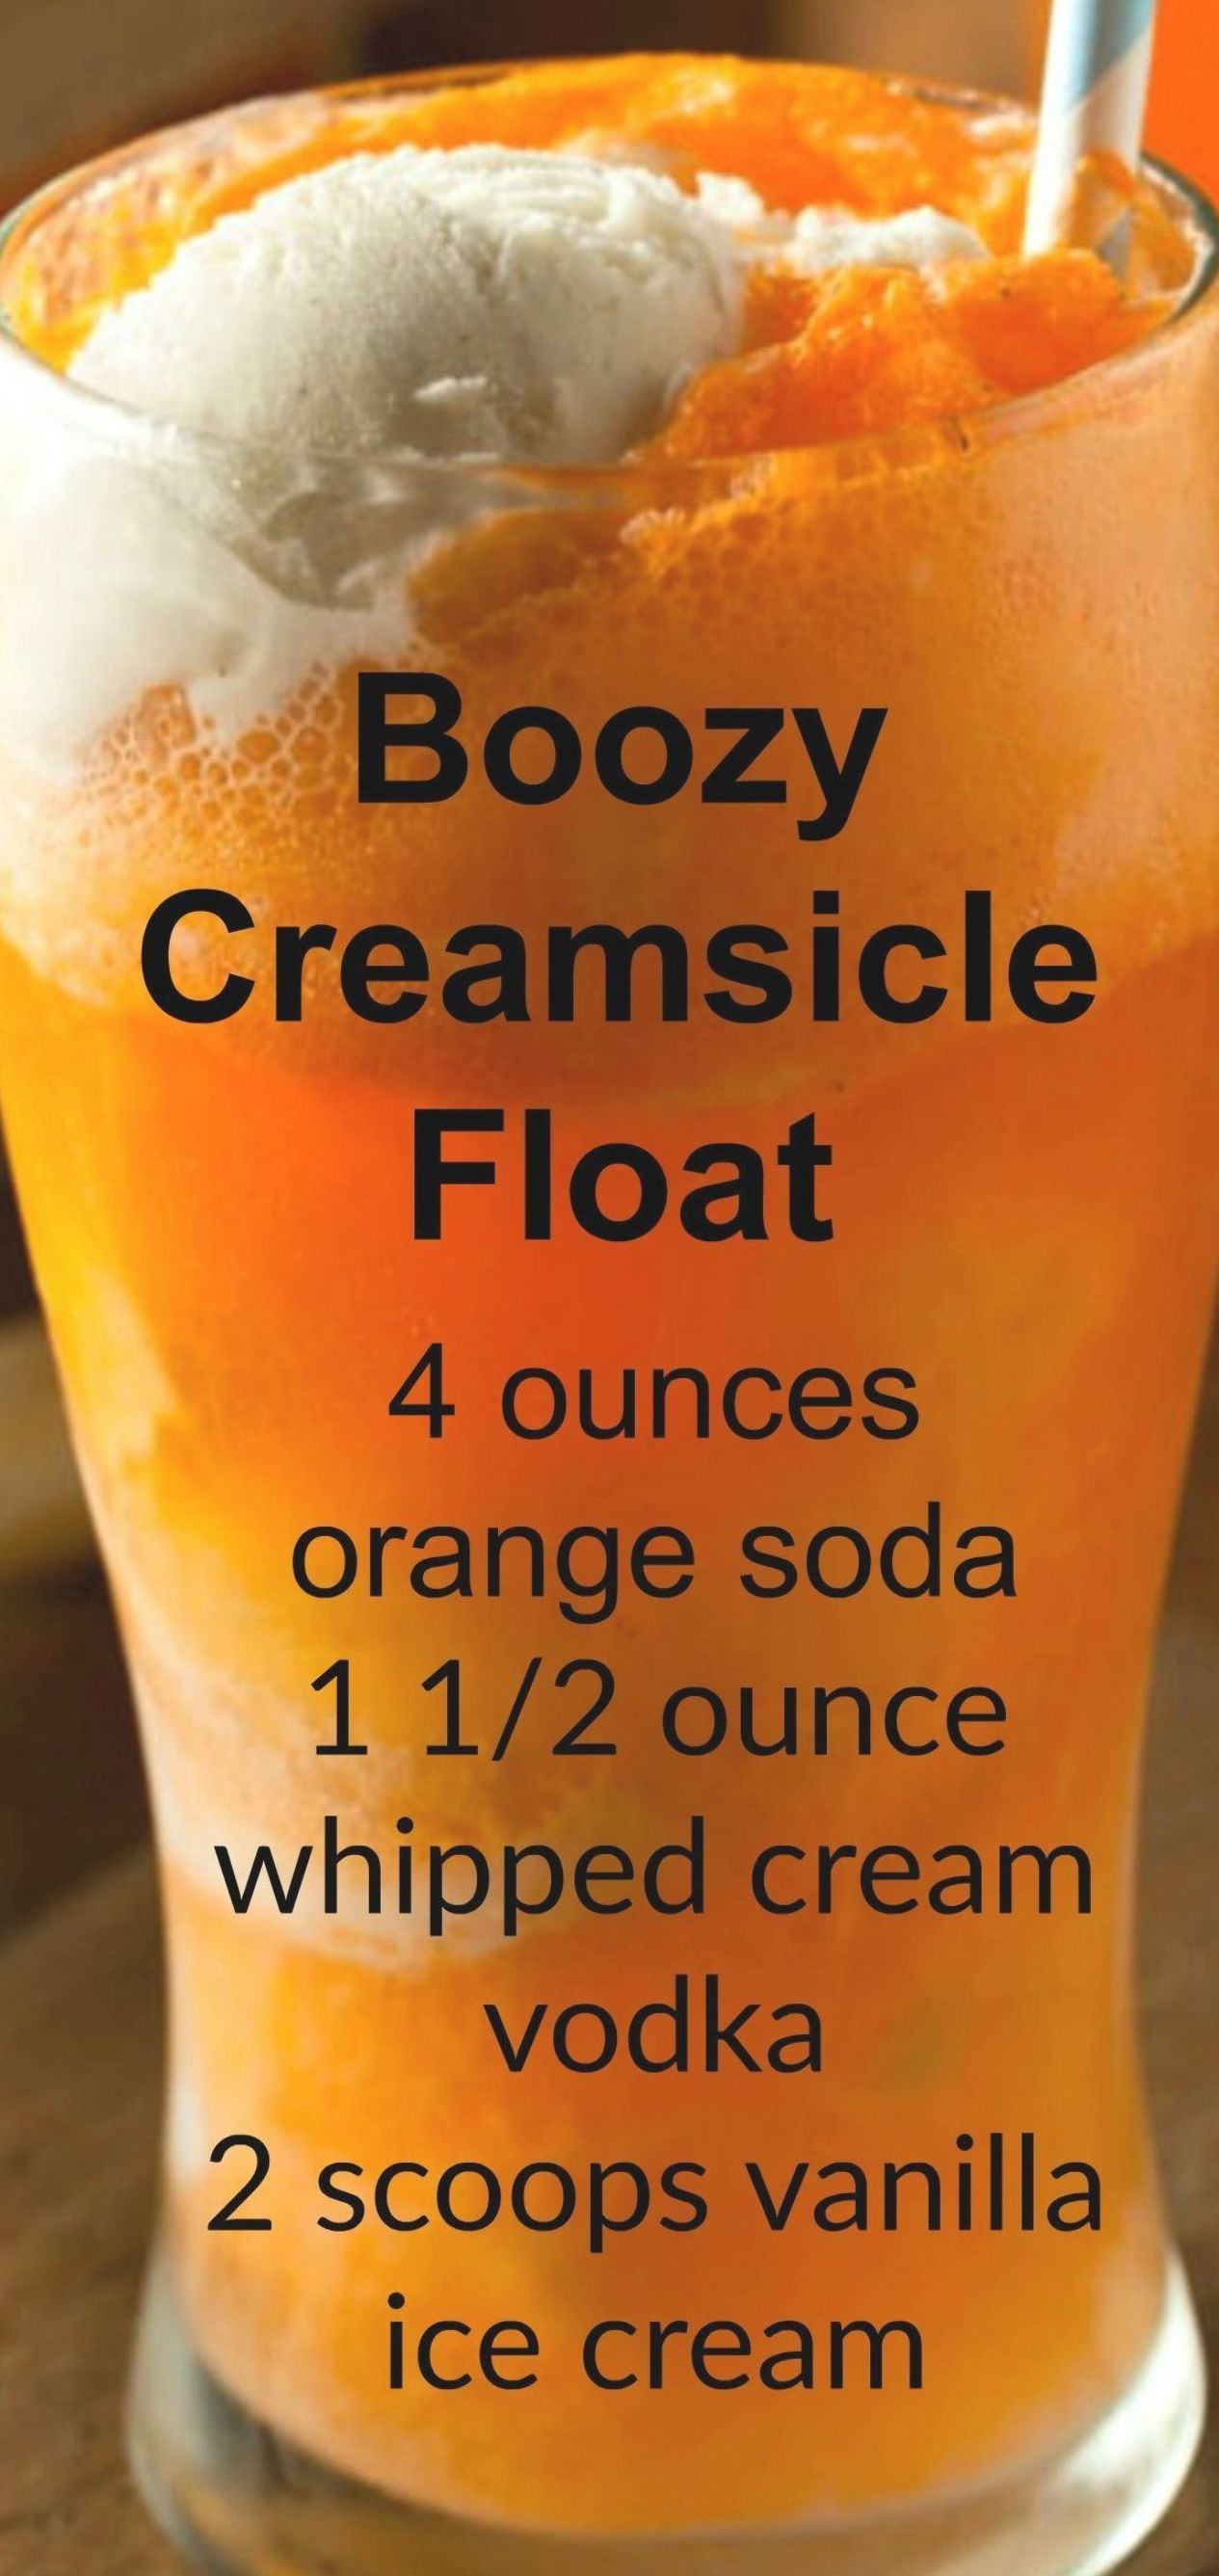 Along With This You Can Add 2oz Of Pinnacle Vanilla And 2oz Of Orange Triple Sec In 2020 Alcohol Drink Recipes Slush Recipes Recipes